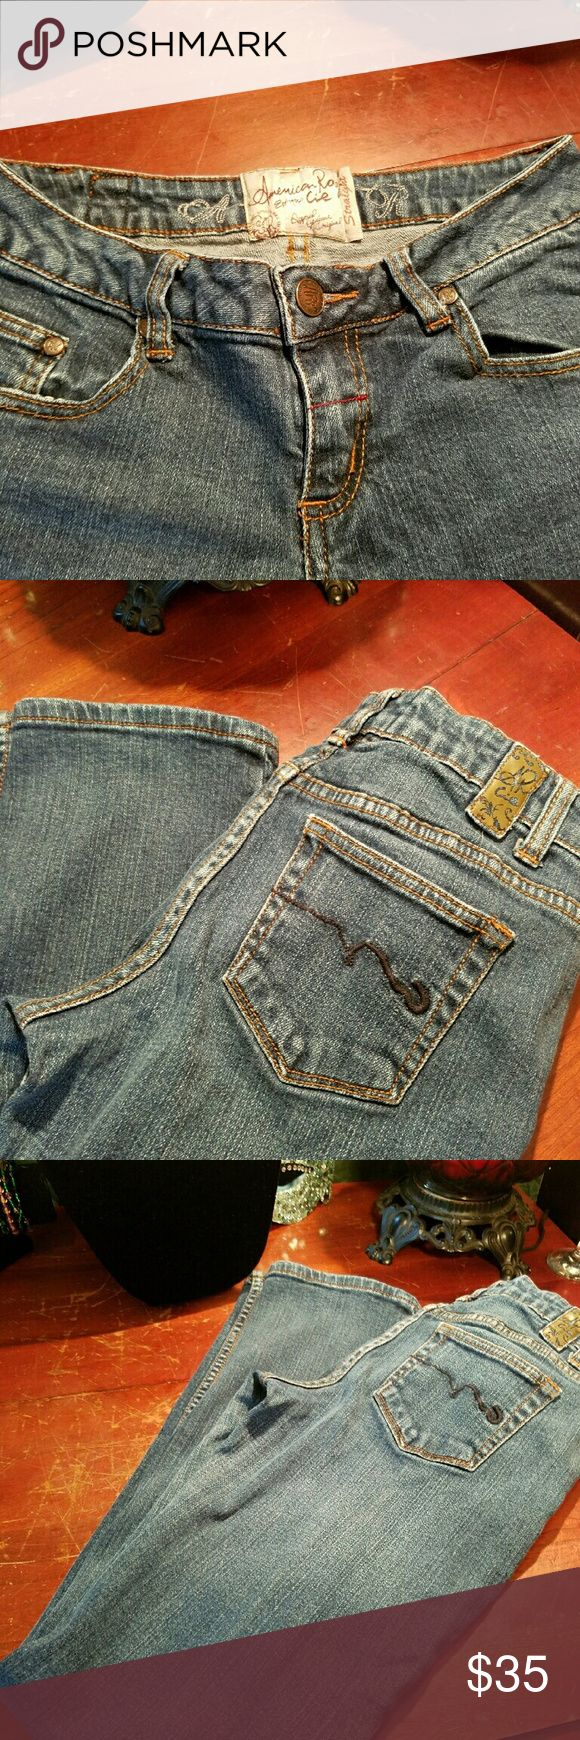 American Rag Size 3 Great condition, barley worn. American Rag Jeans size 3 R. I want to say they are straight leg. But not sure. American Rag  Jeans